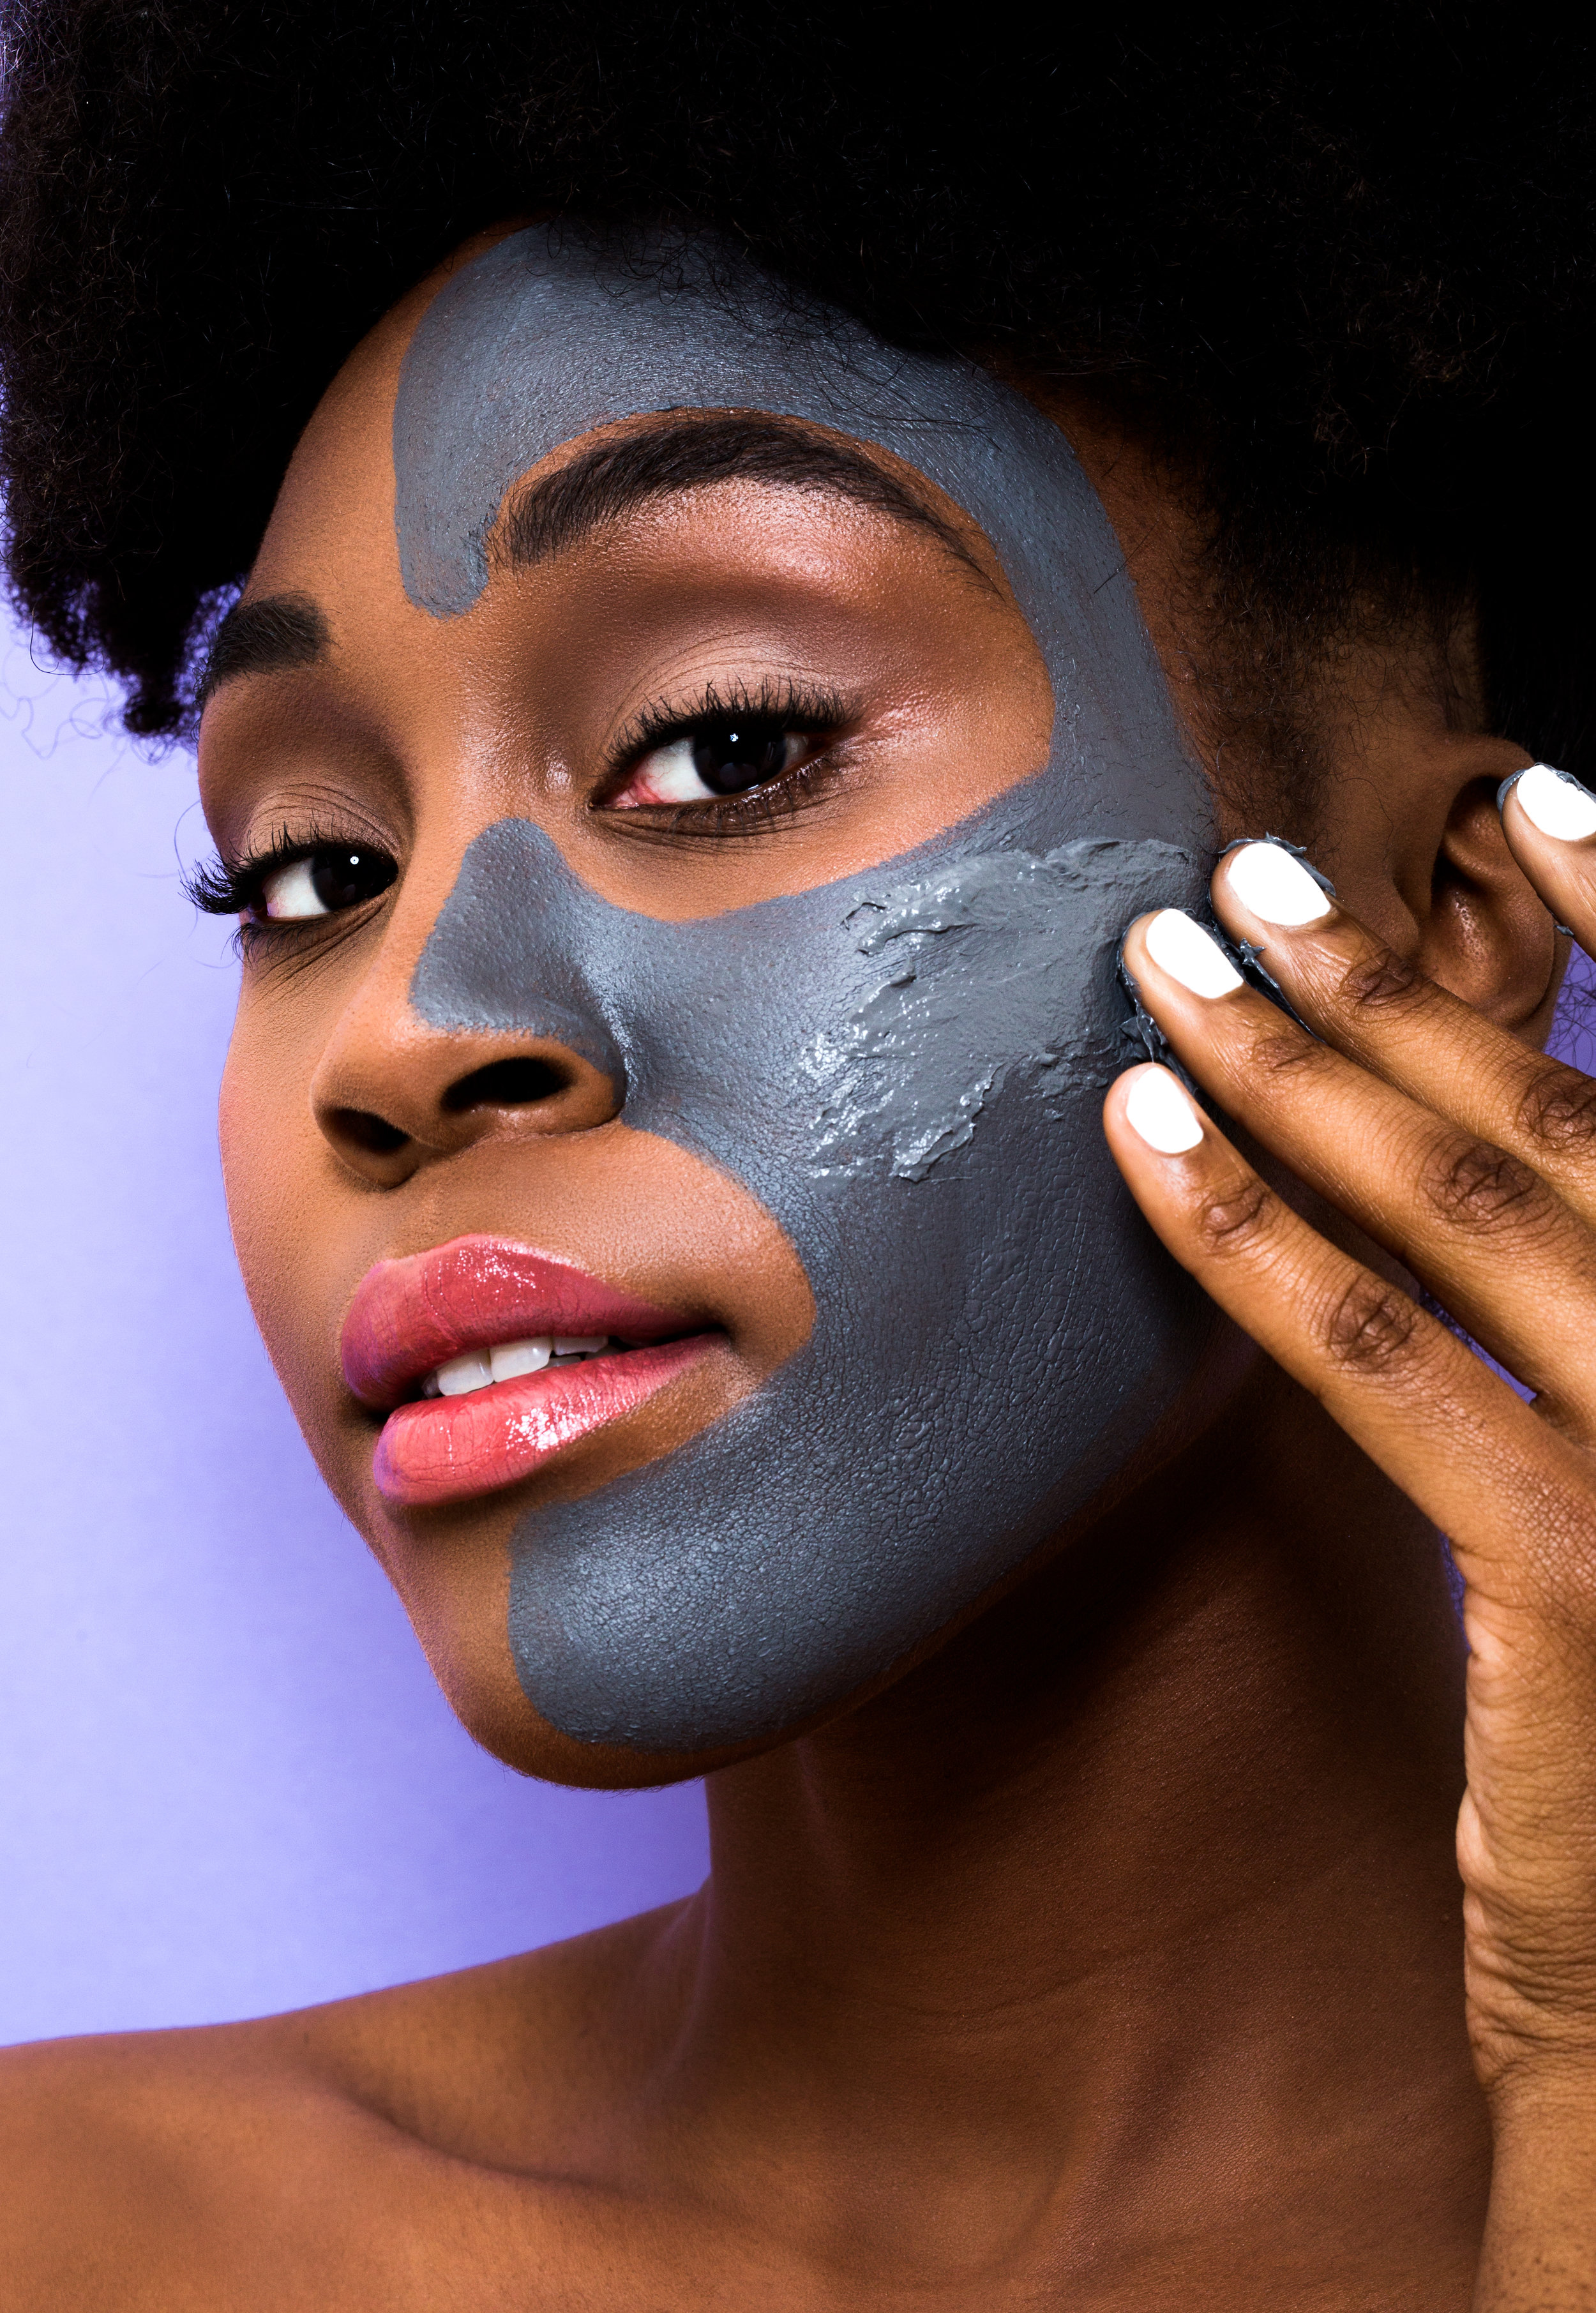 Give yourself some TLC with a wash-off face mask.